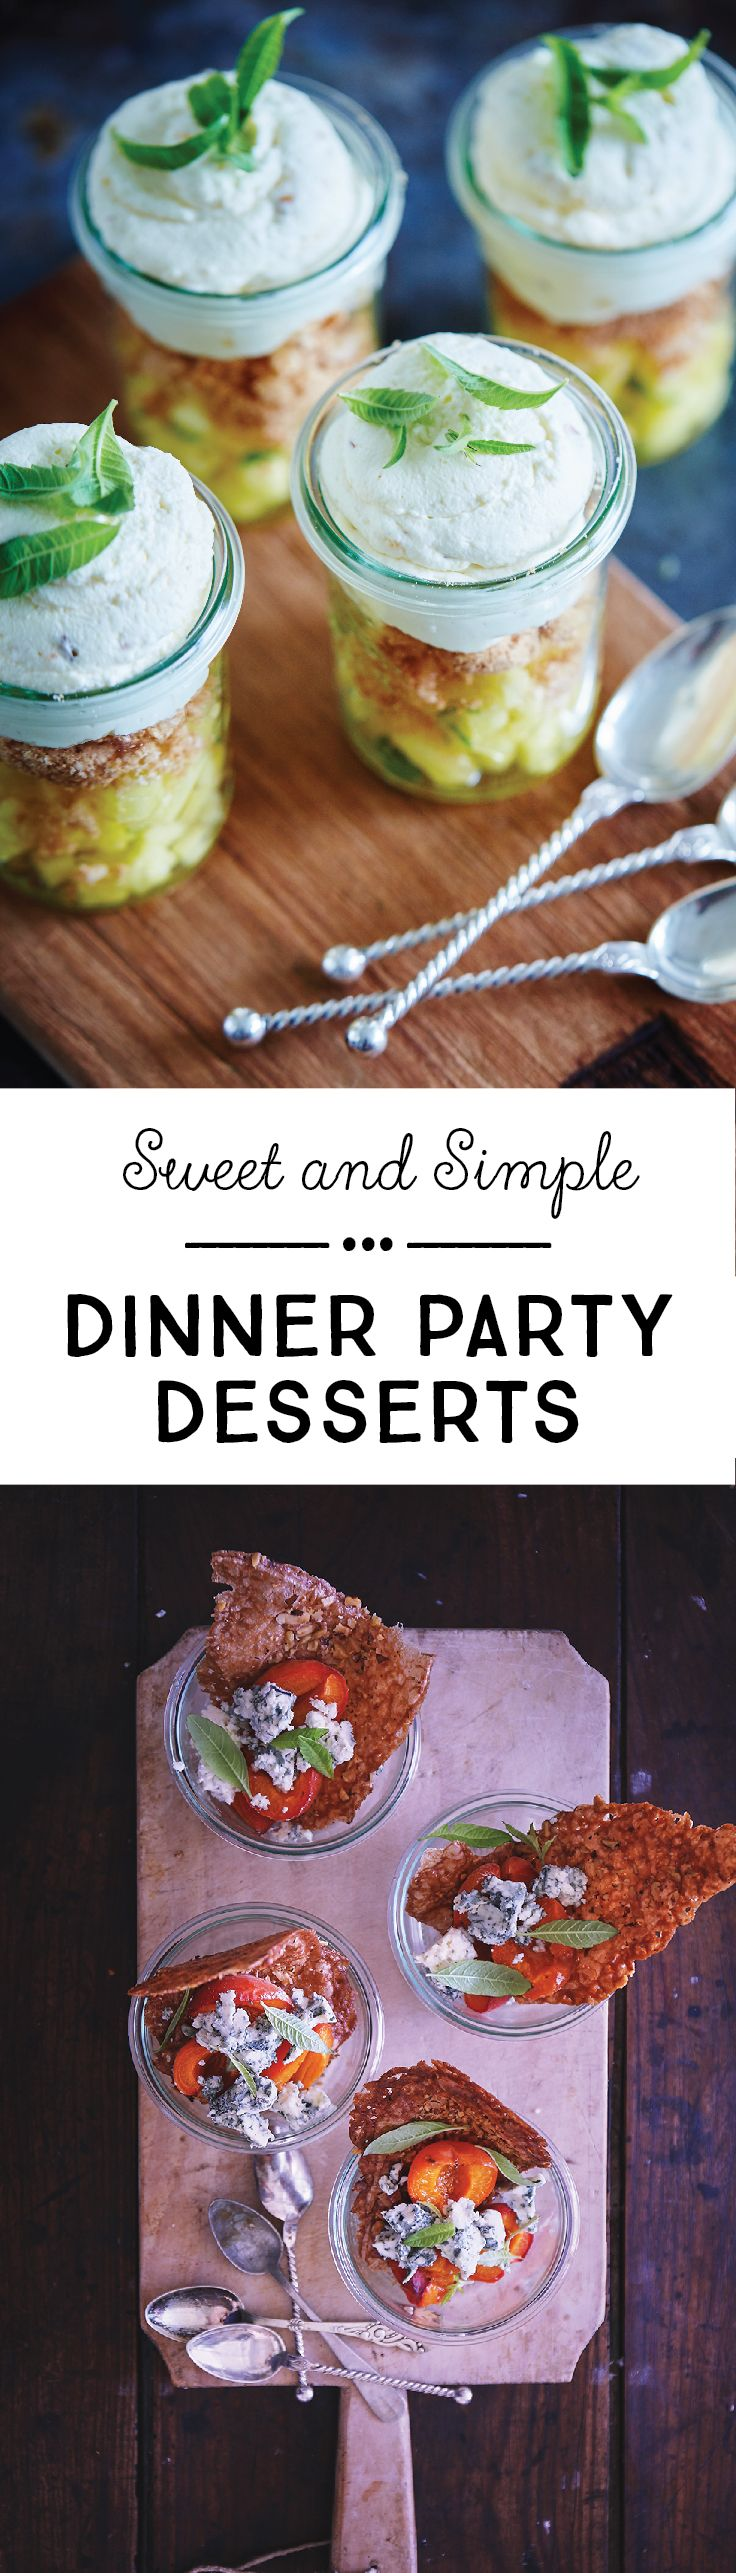 No dinner party is complete without an indulgent dessert